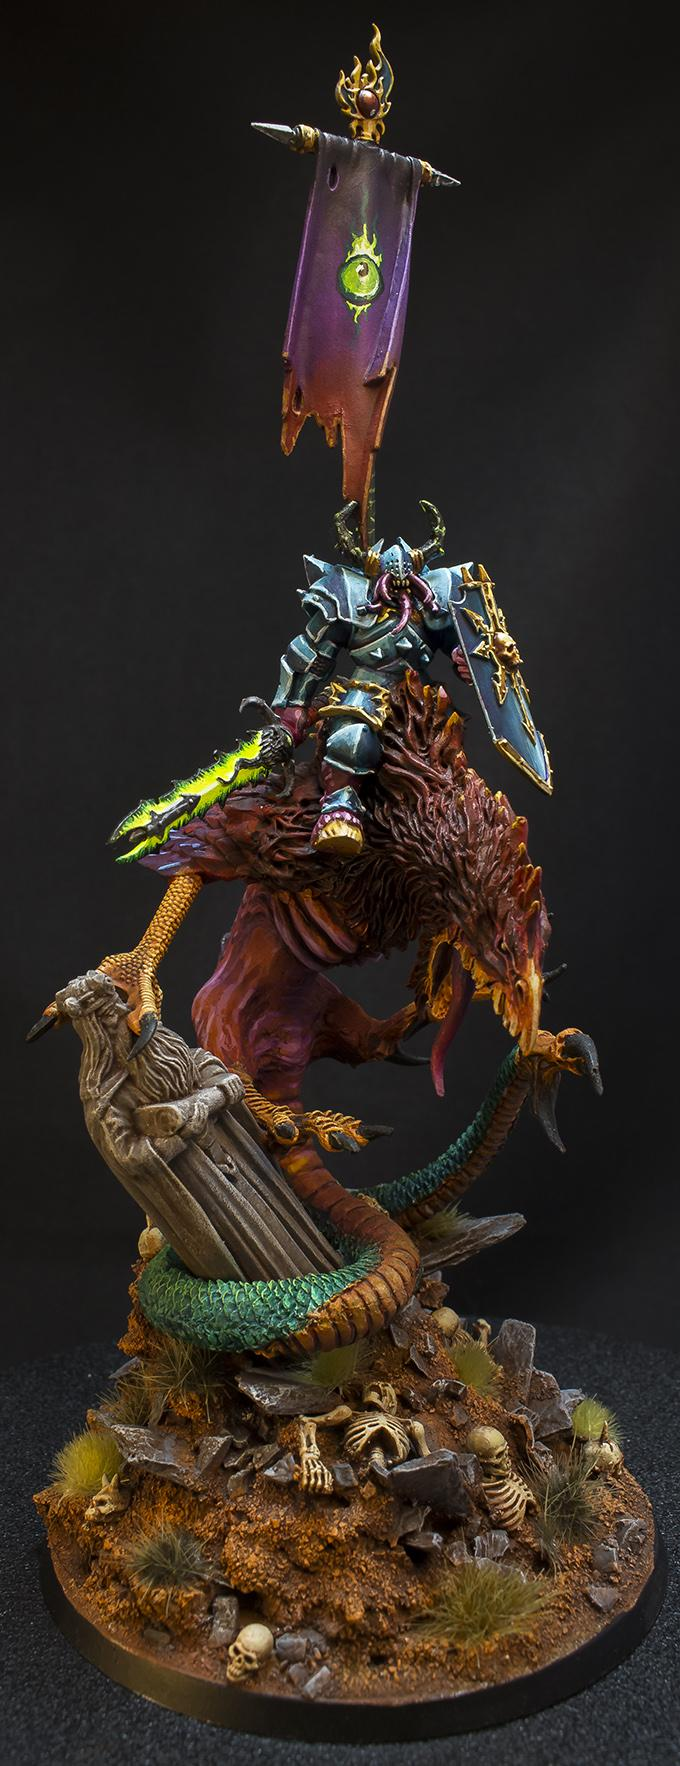 Age Of Sigmar, Chaos, Cockatrisse, Conversion, Daemonic Mount, Lord, Lord Of Tzeentch, Tzeentch, Warriors Of Chaos